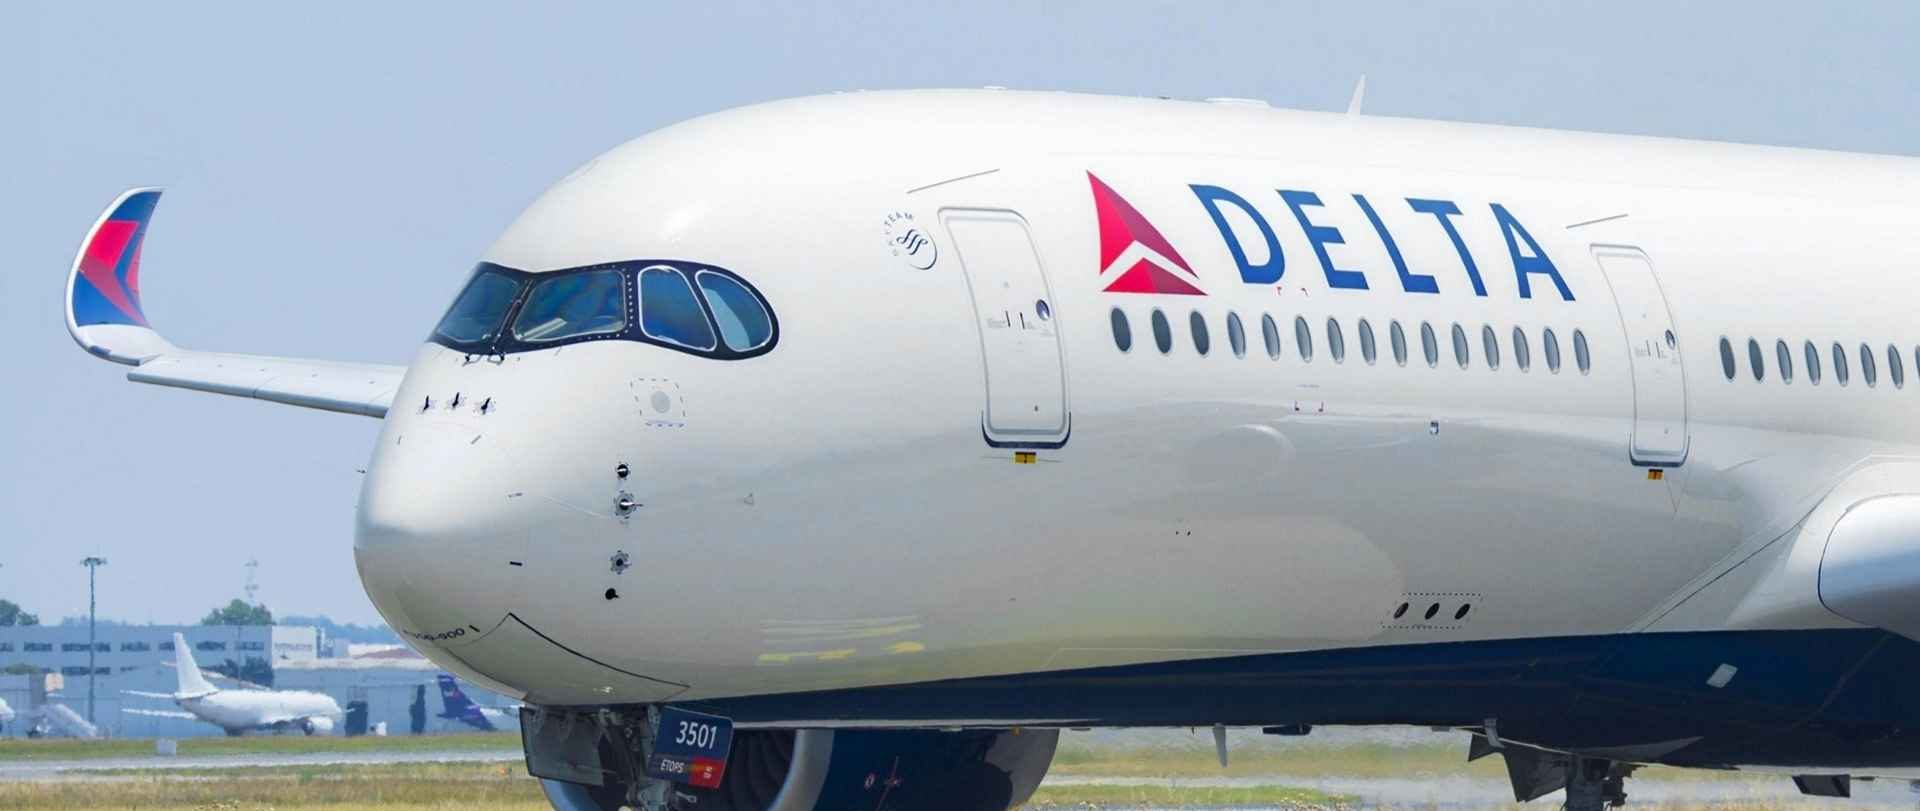 Delta Air Lines Airbus A350 - SkyGoFly